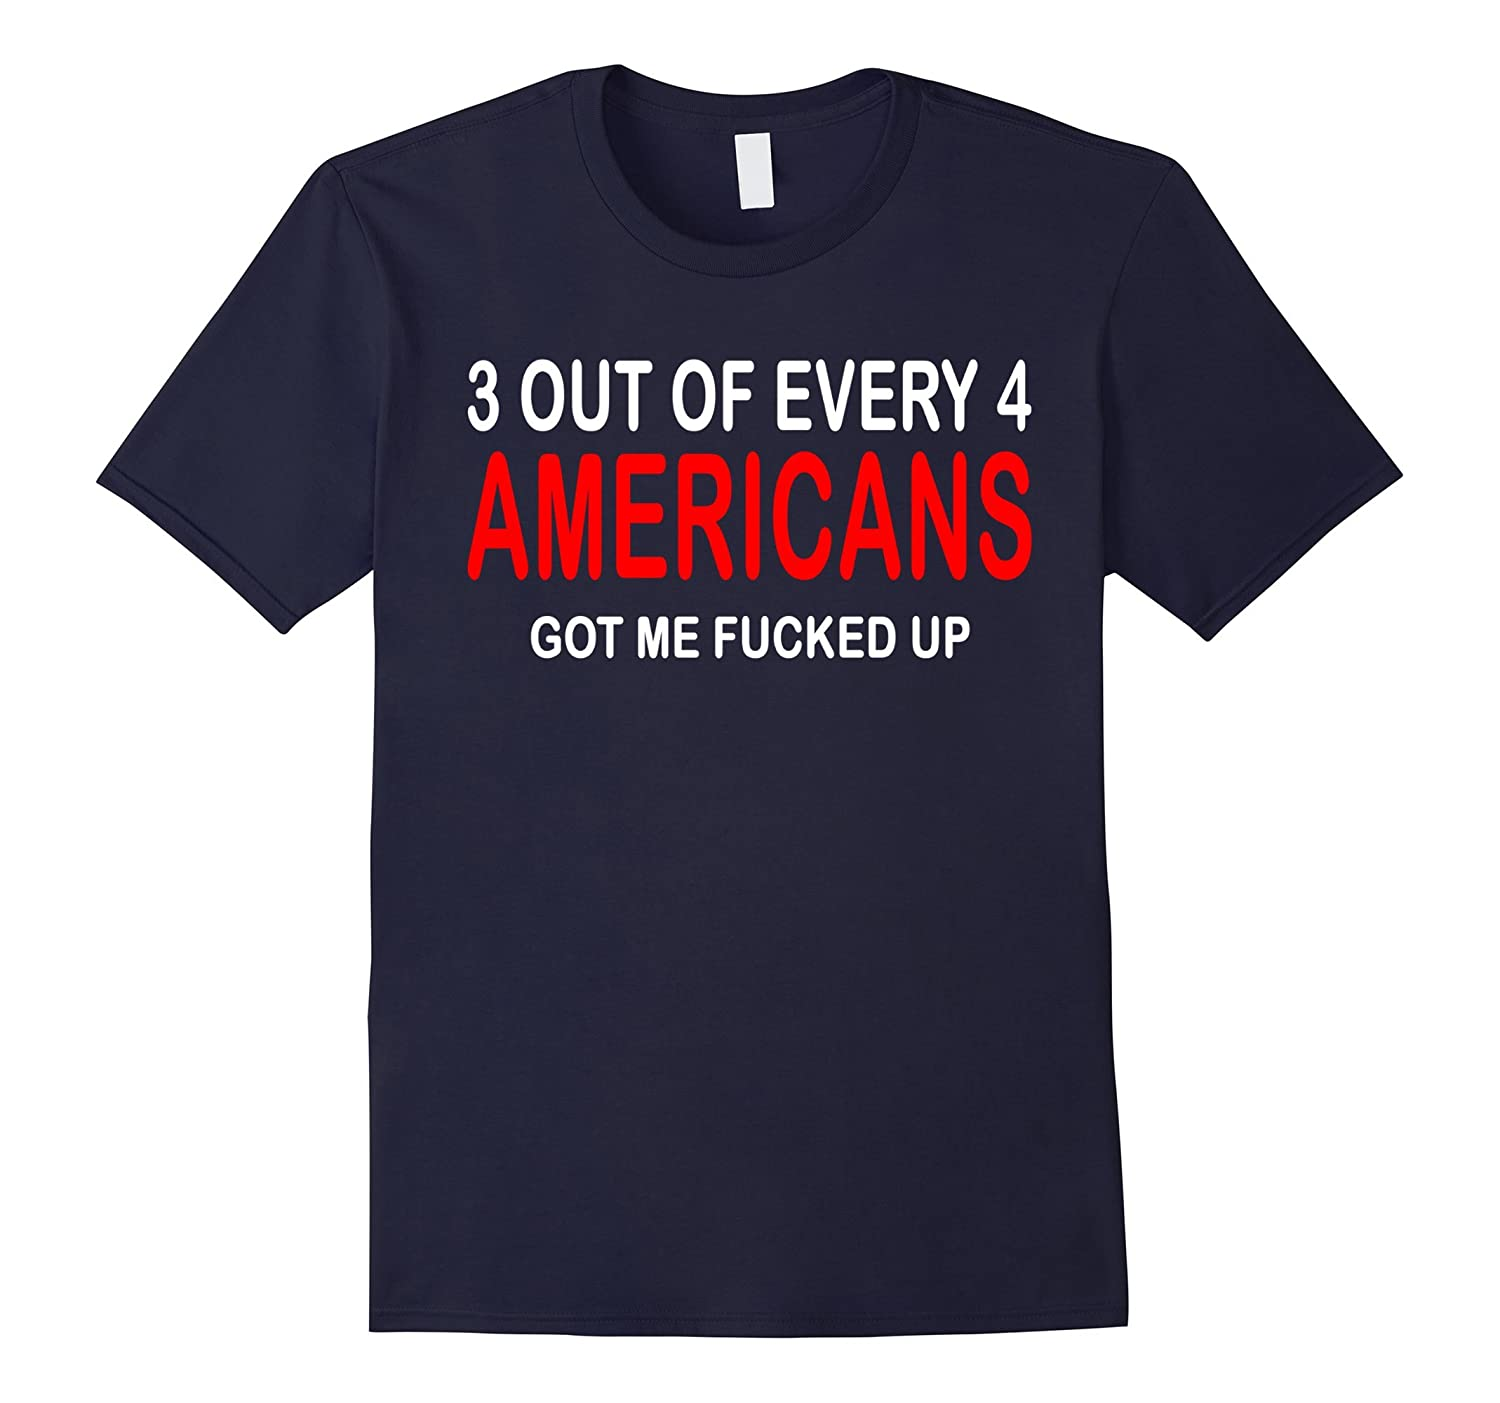 3 Out Of Every 4 Americans Got Me Fucked Up Funny Tee Shirt-TH